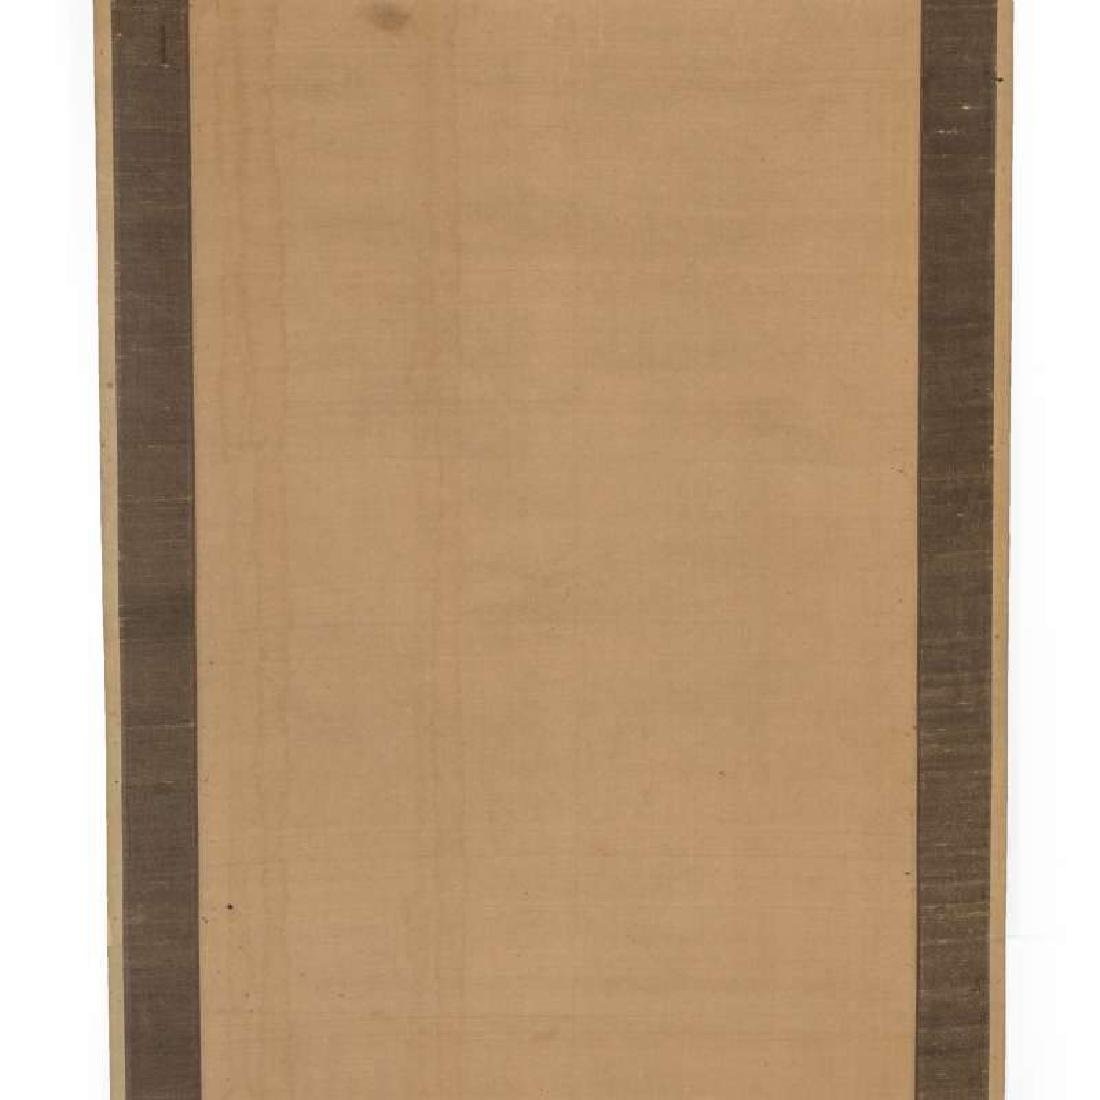 A GOOD EDO PERIOD JAPANESE SCROLL DATED 1860 - 4